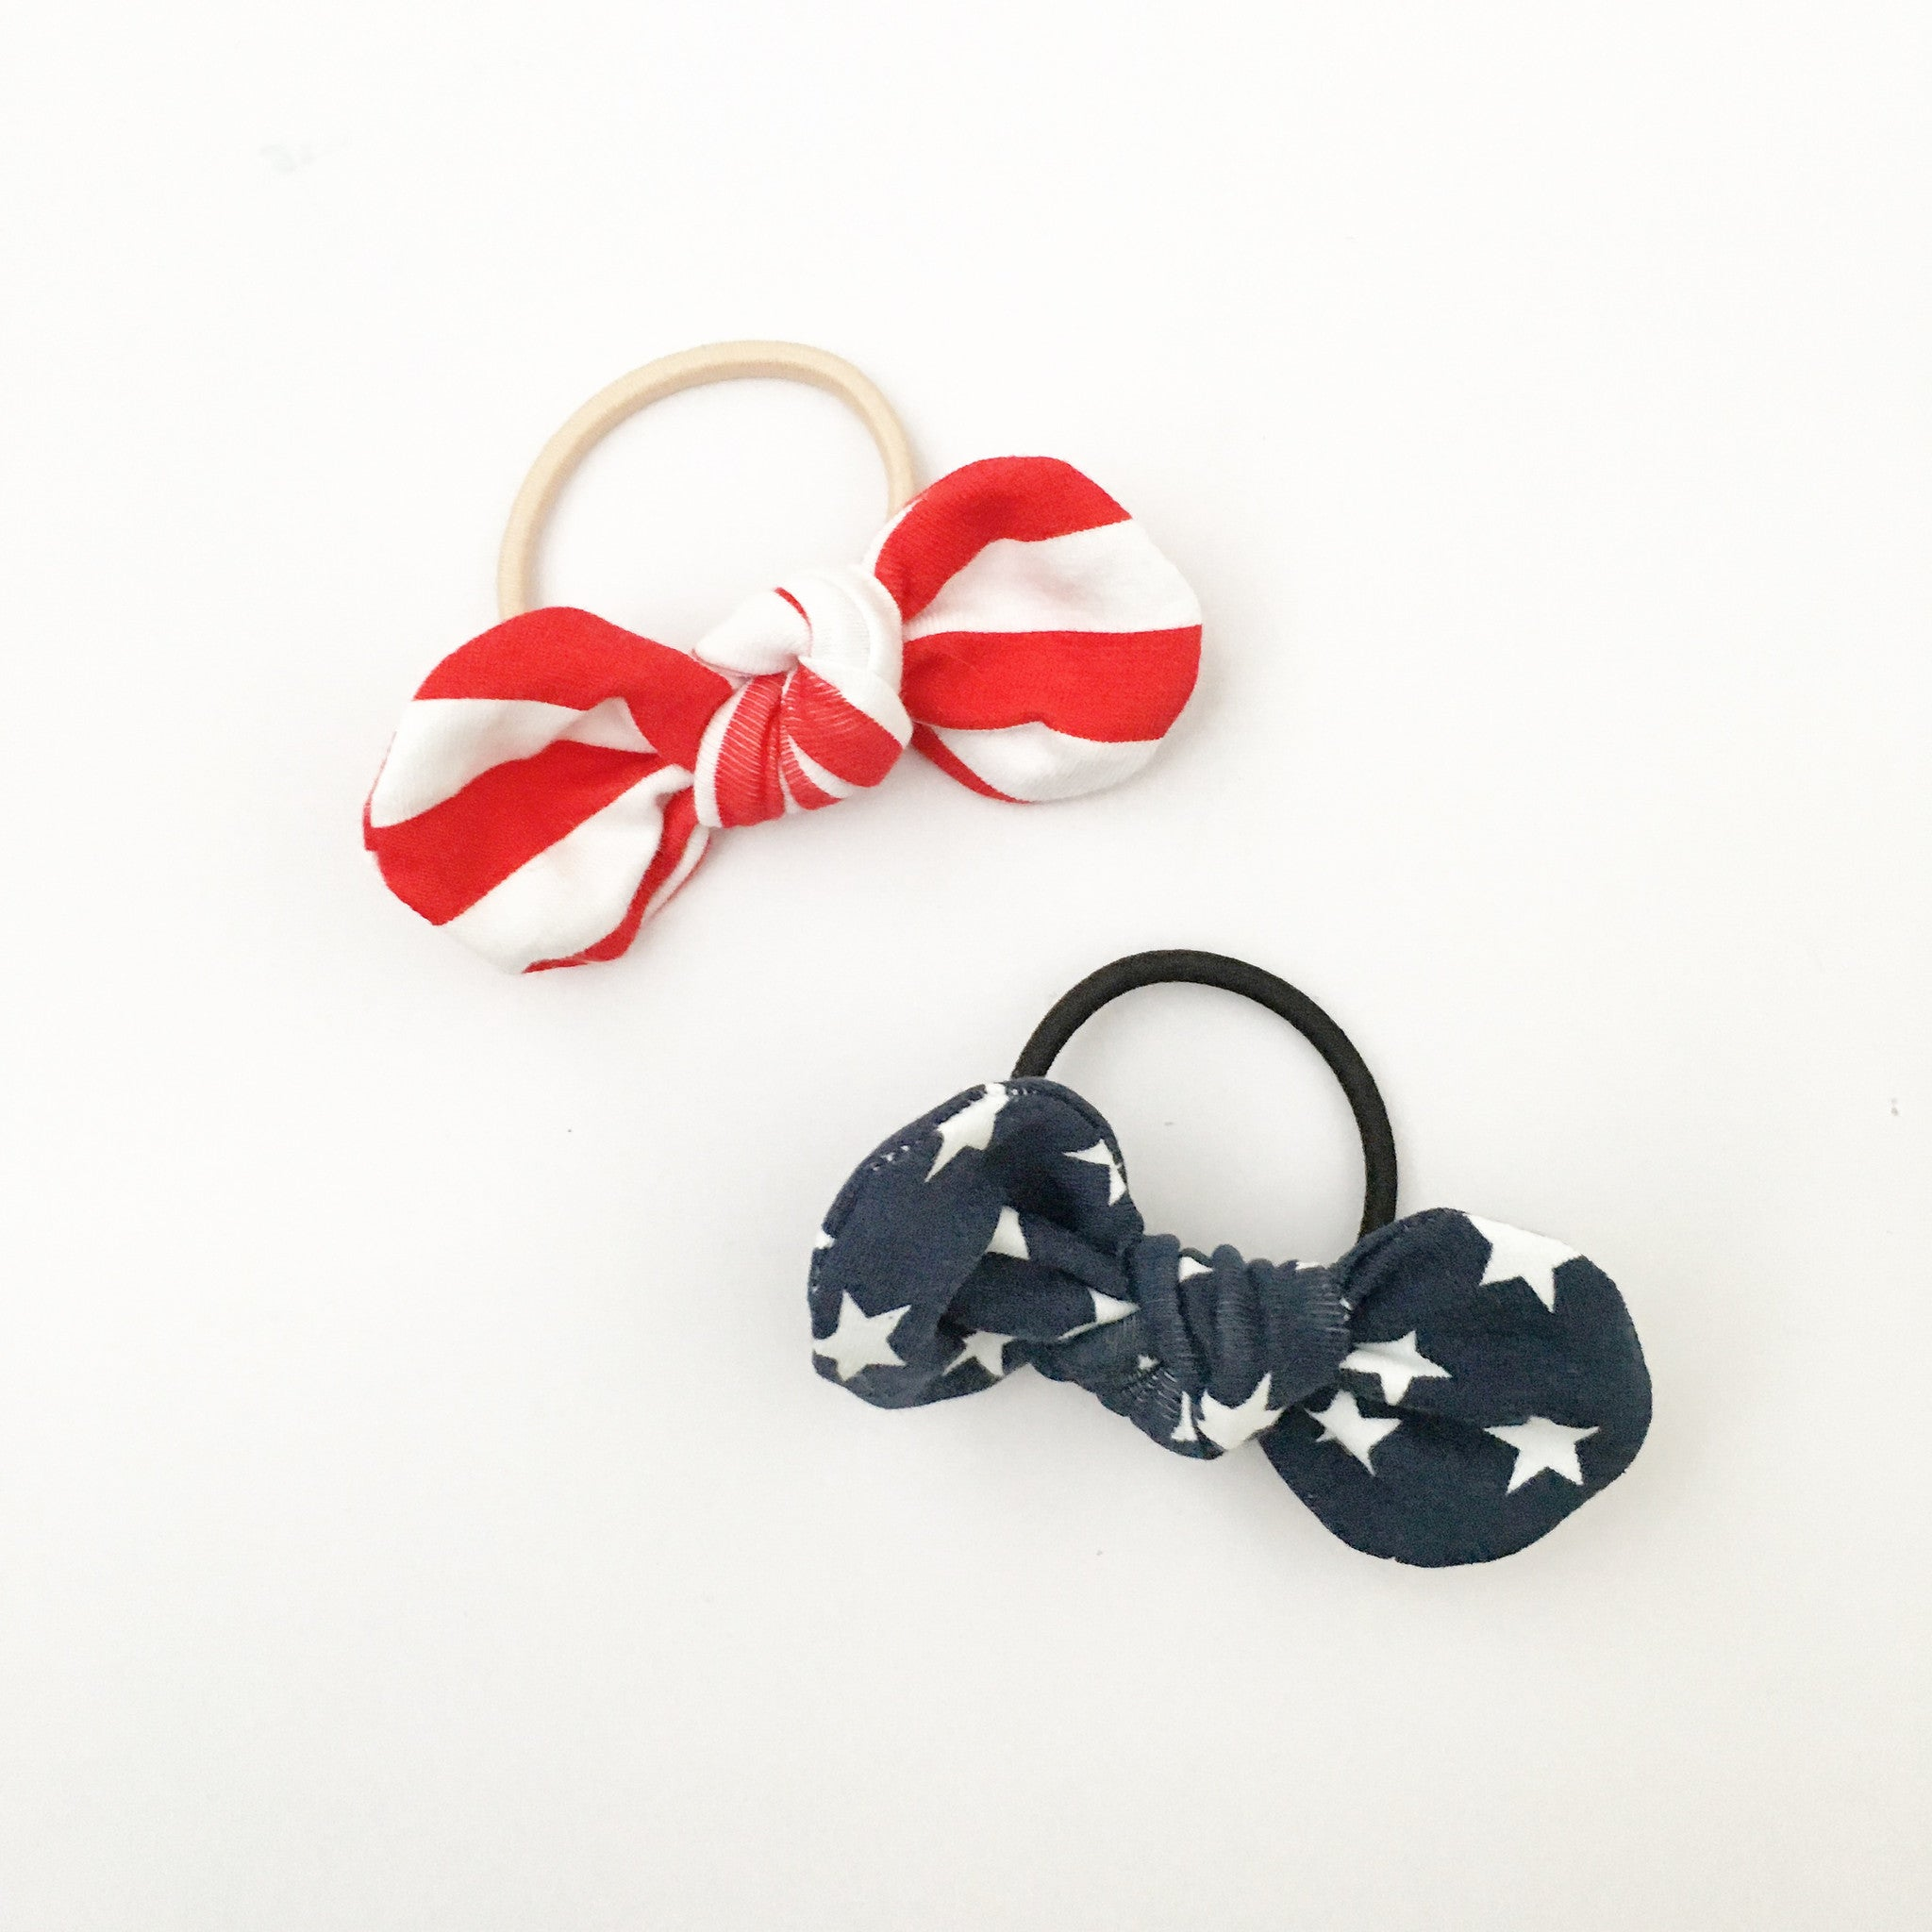 stars and stripes - knotted hair ties